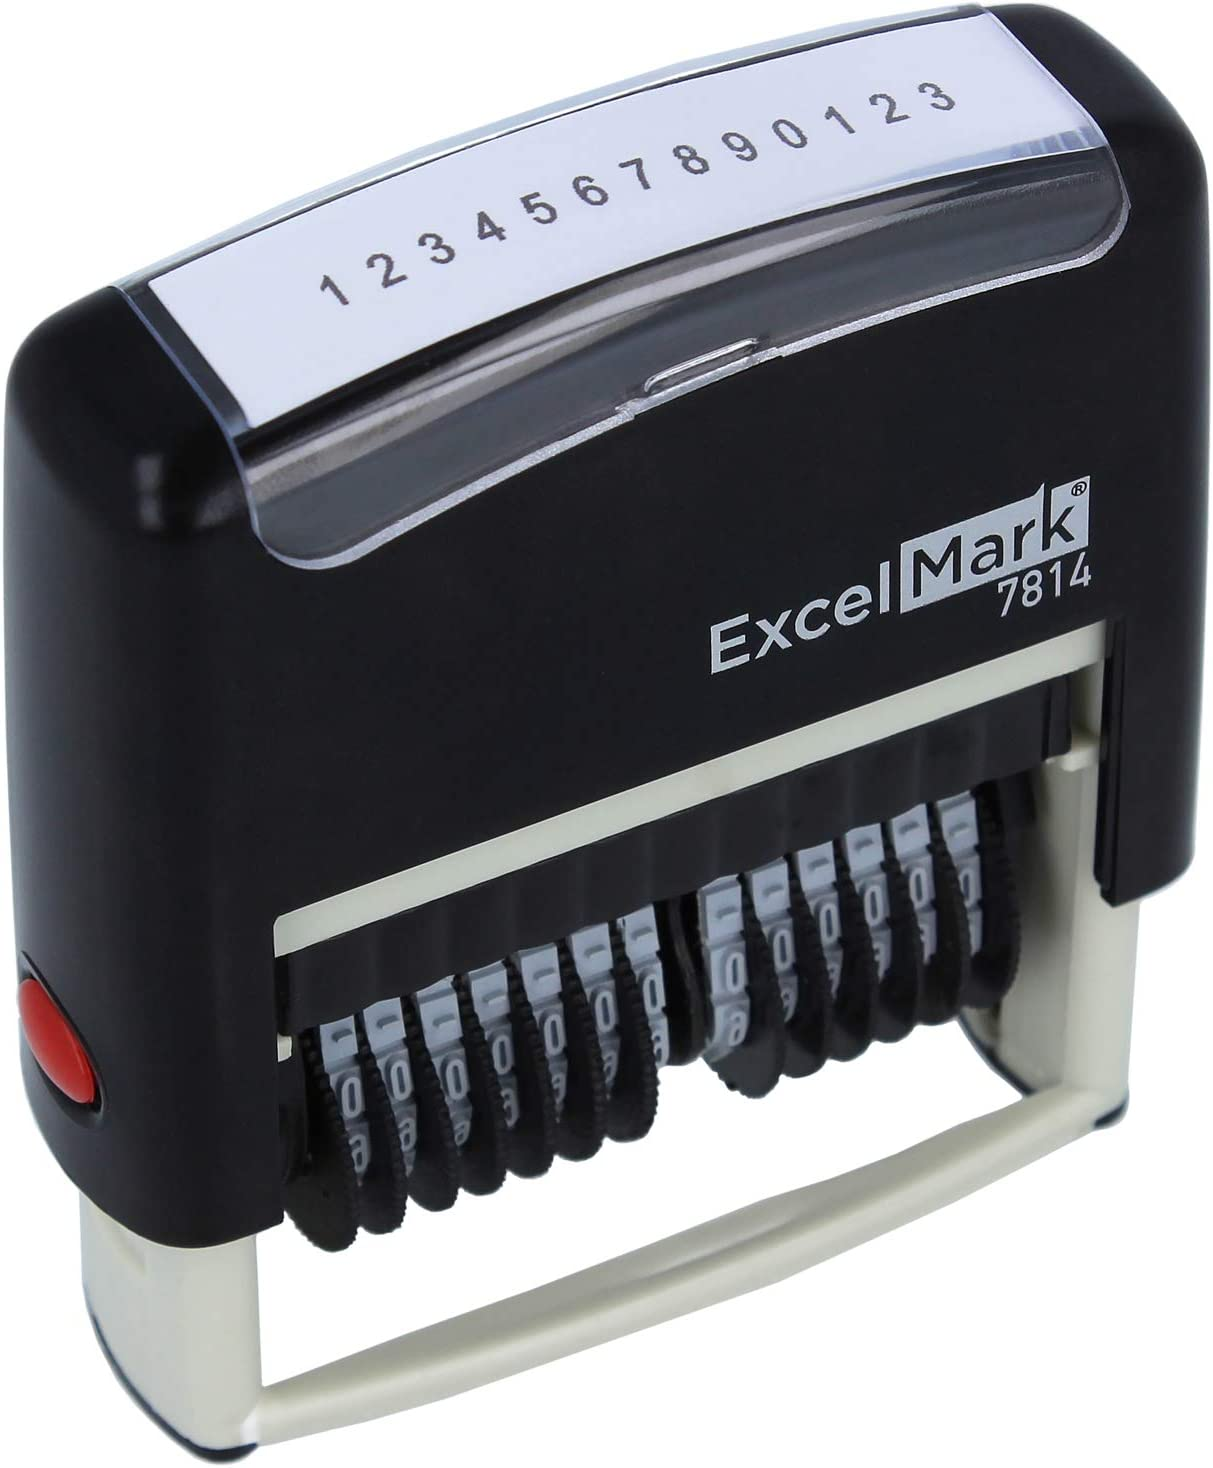 ExcelMark 13 Band Self-Inking Number Stamp - 2